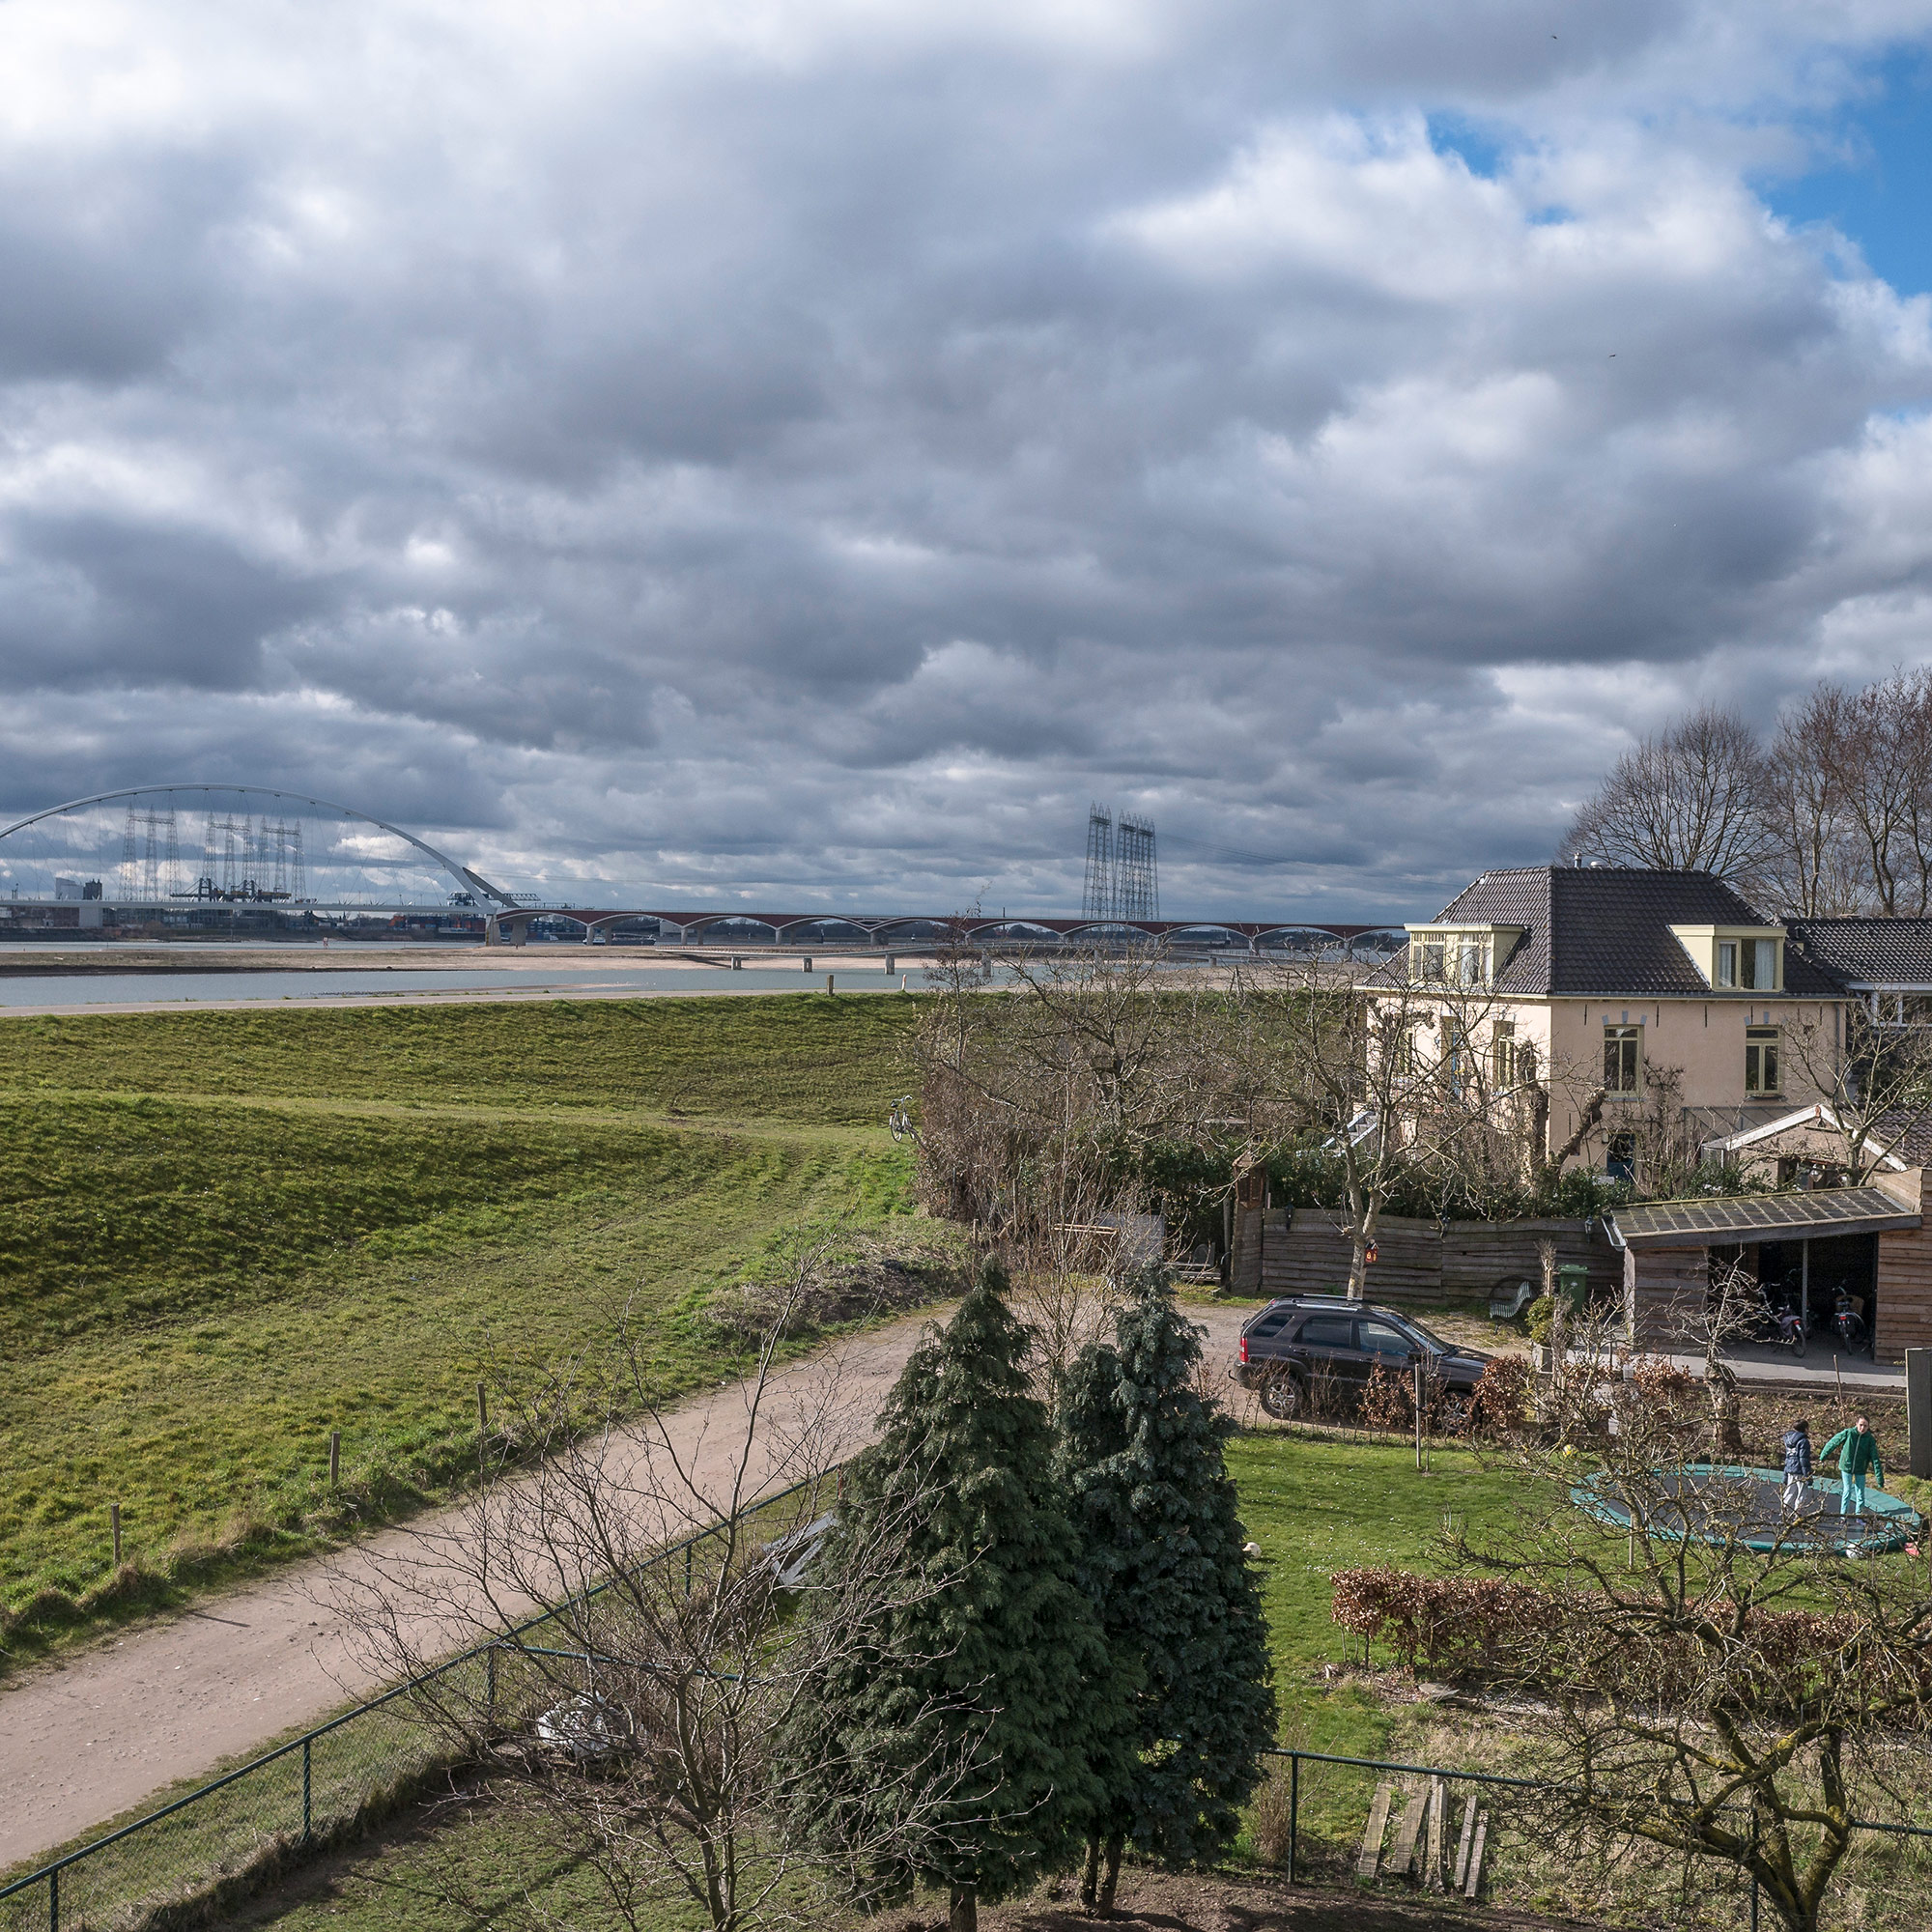 A view of the Room for the River project in Nijmegen. A second river has been constructed to give room to the Waal river. (Photo by Joris van Gennip/GroundTruth)